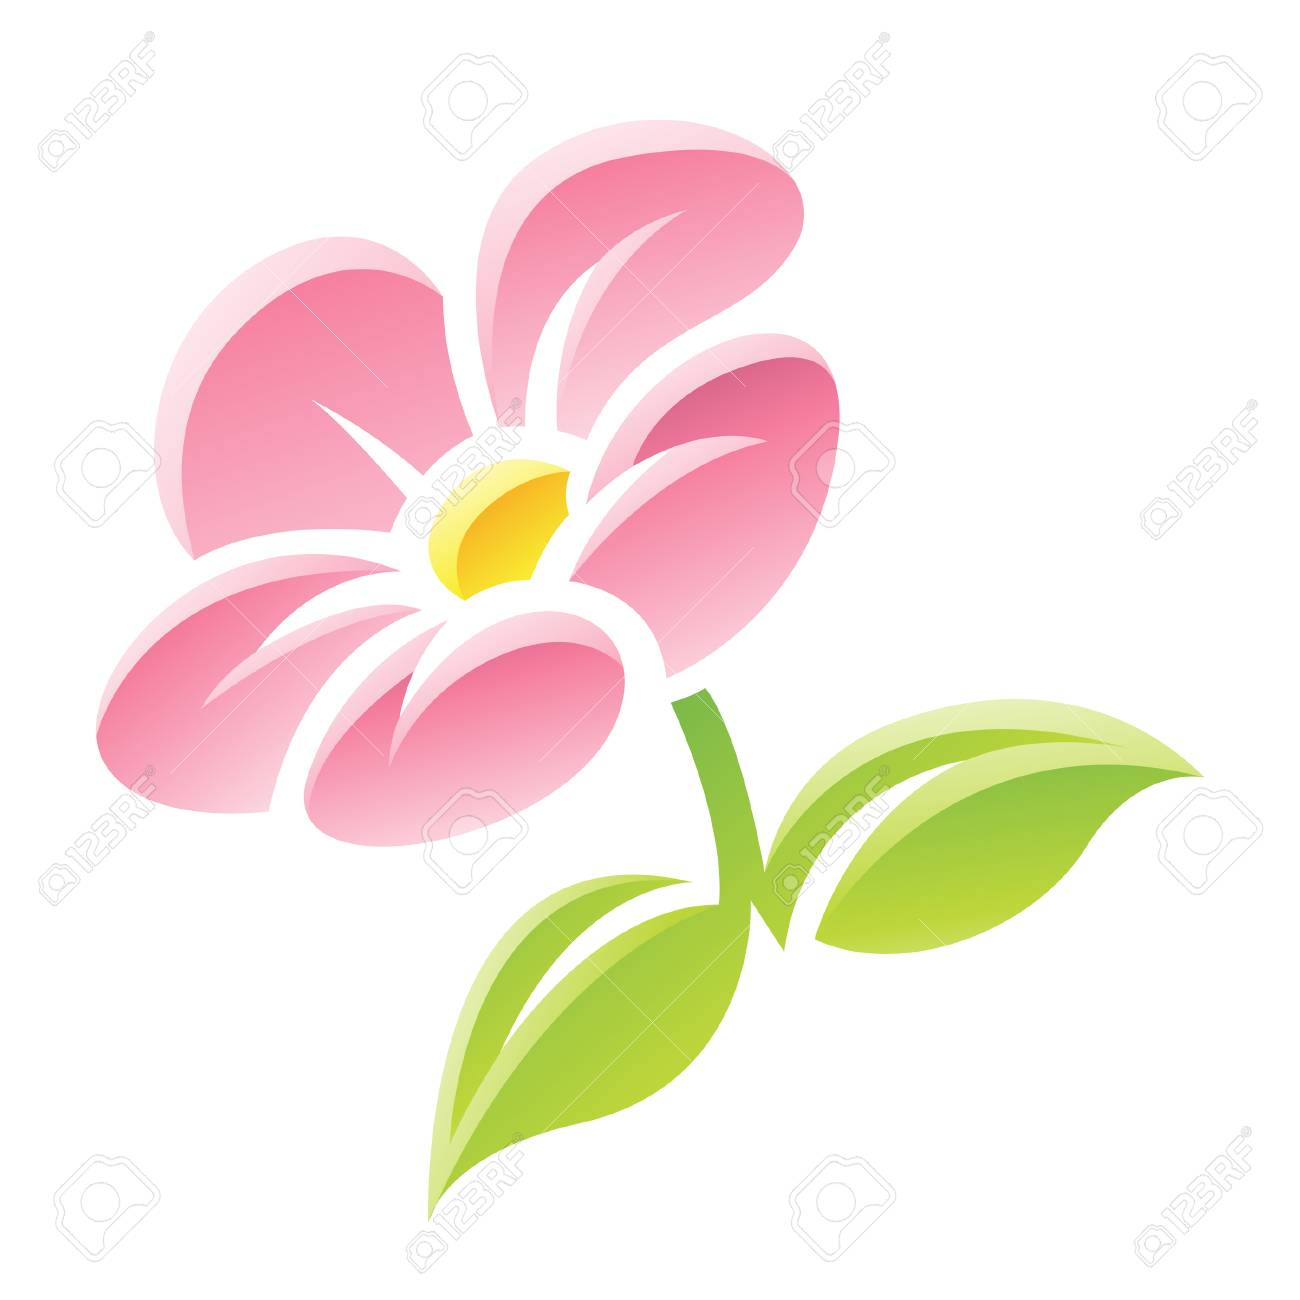 Illustration of pink flower icon isolated on a white background illustration of pink flower icon isolated on a white background stock illustration 61766784 mightylinksfo Choice Image